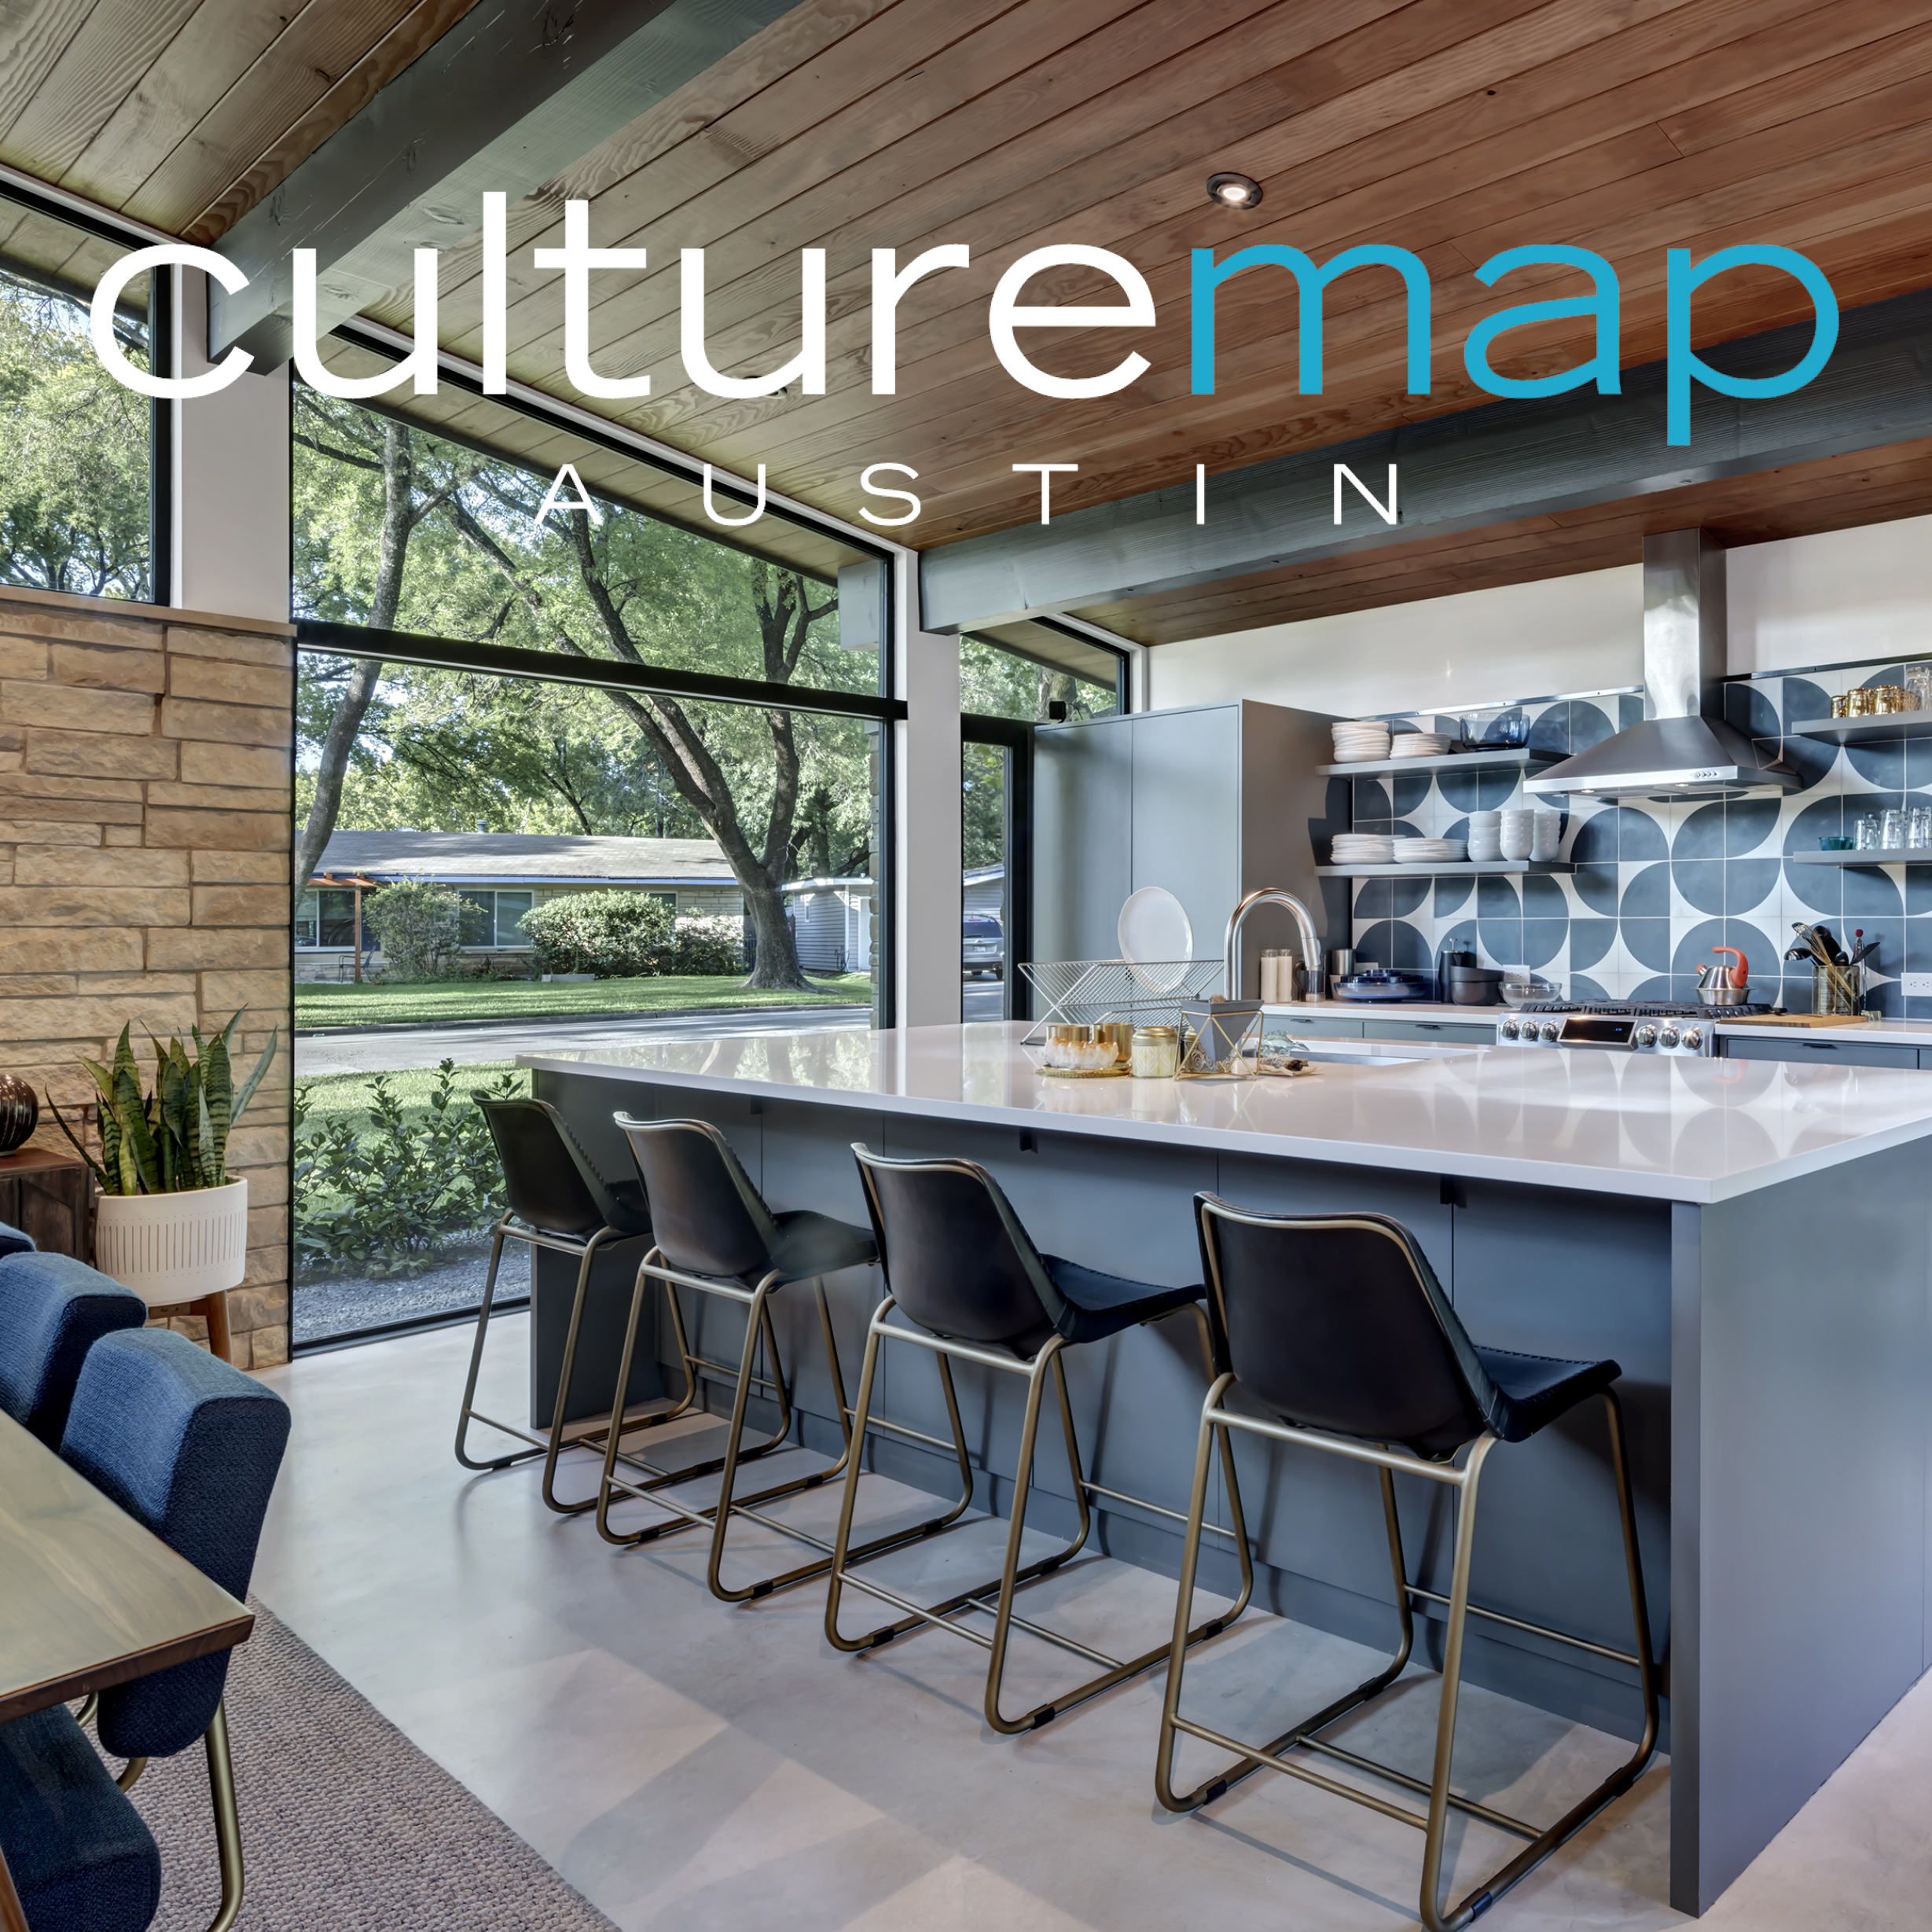 Culture map Austin_2018_09_Re-Open